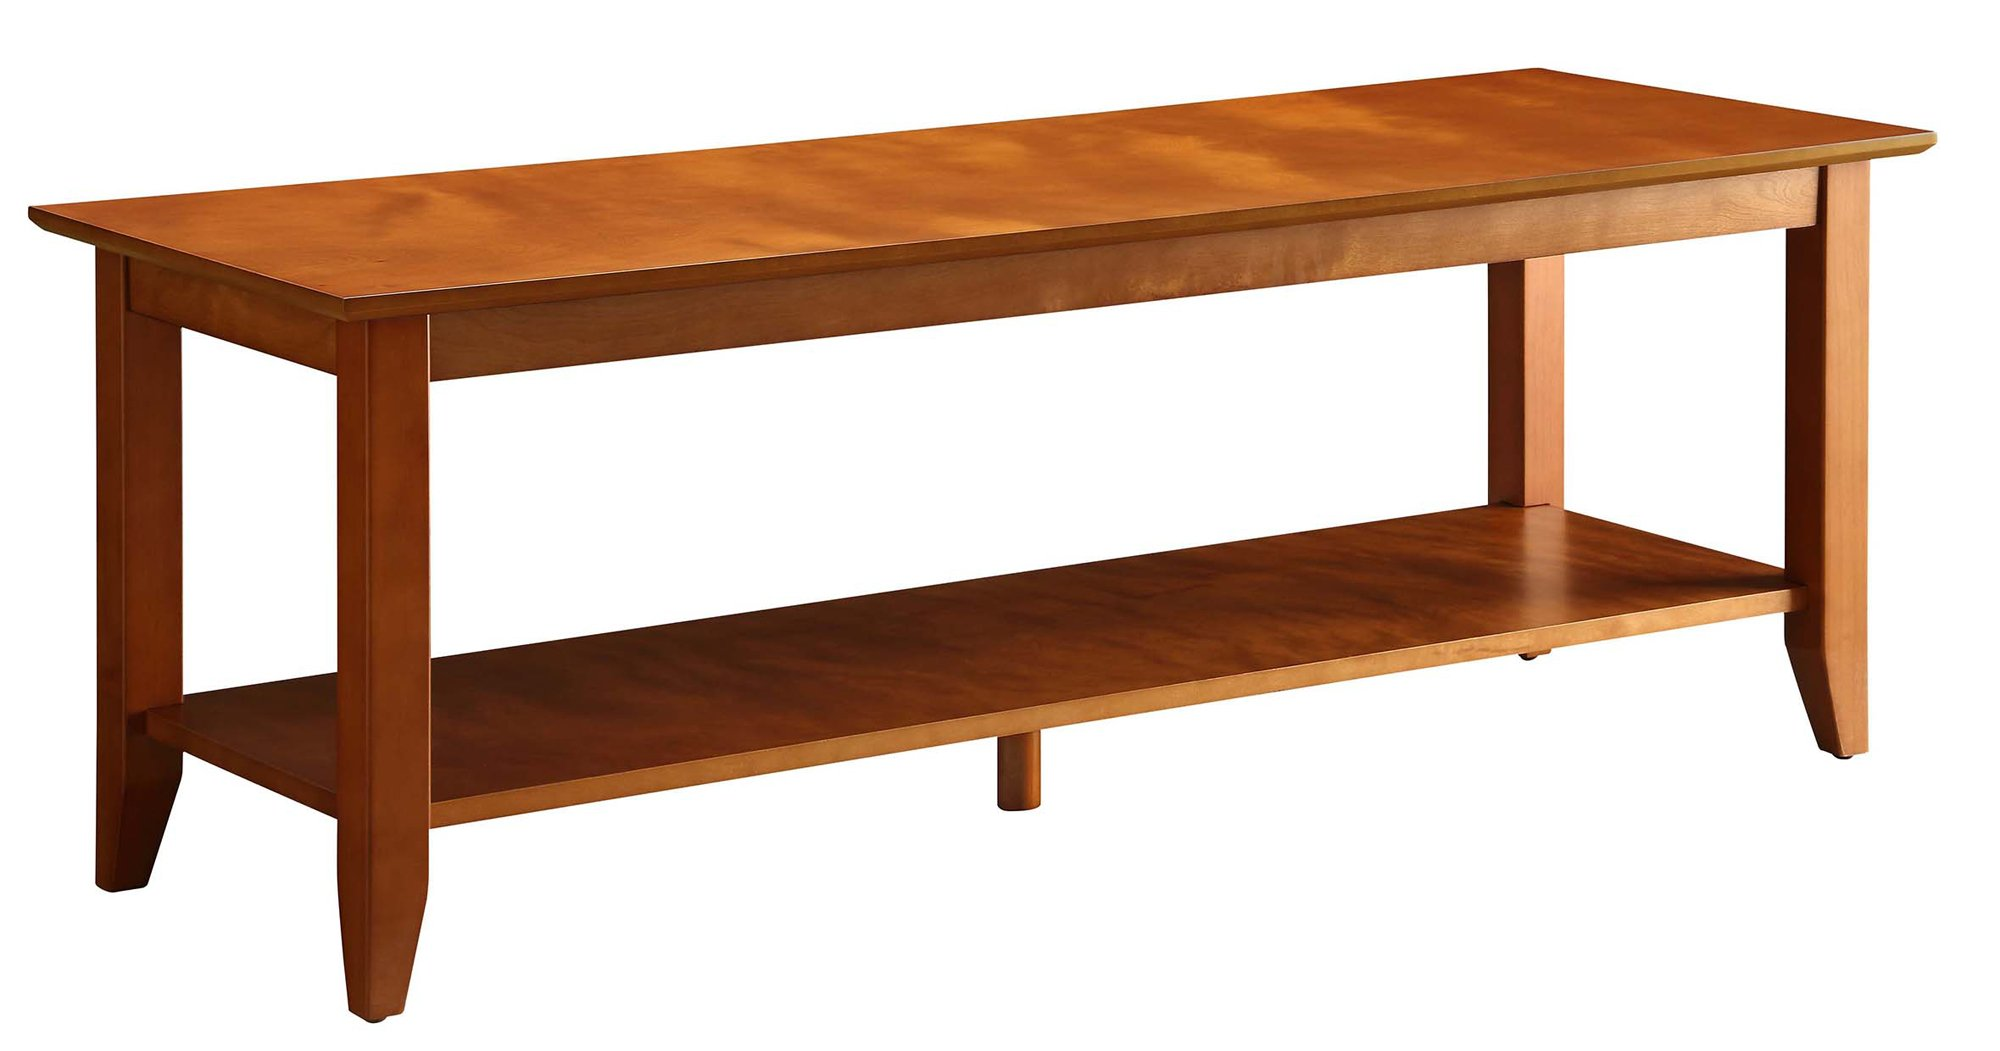 Convenience Concepts American Heritage Coffee Table with Shelf, Cherry by Convenience Concepts